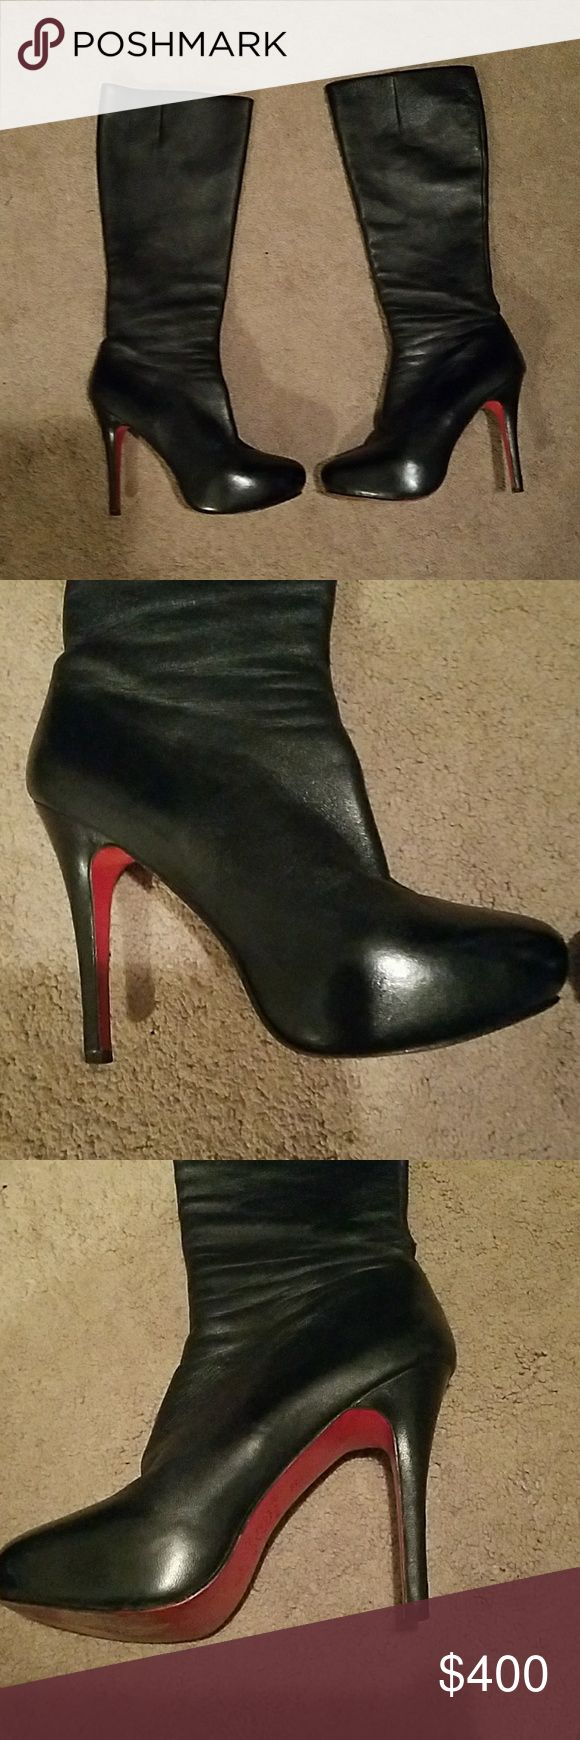 Christian loubiton tall leather boots Heel height 4.5 in.shaft height 14in.calf circumference 13in.great condition,bottom shows wear naturally,but other than that minor scuffs as shown in pics Christian Louboutin Shoes Heeled Boots